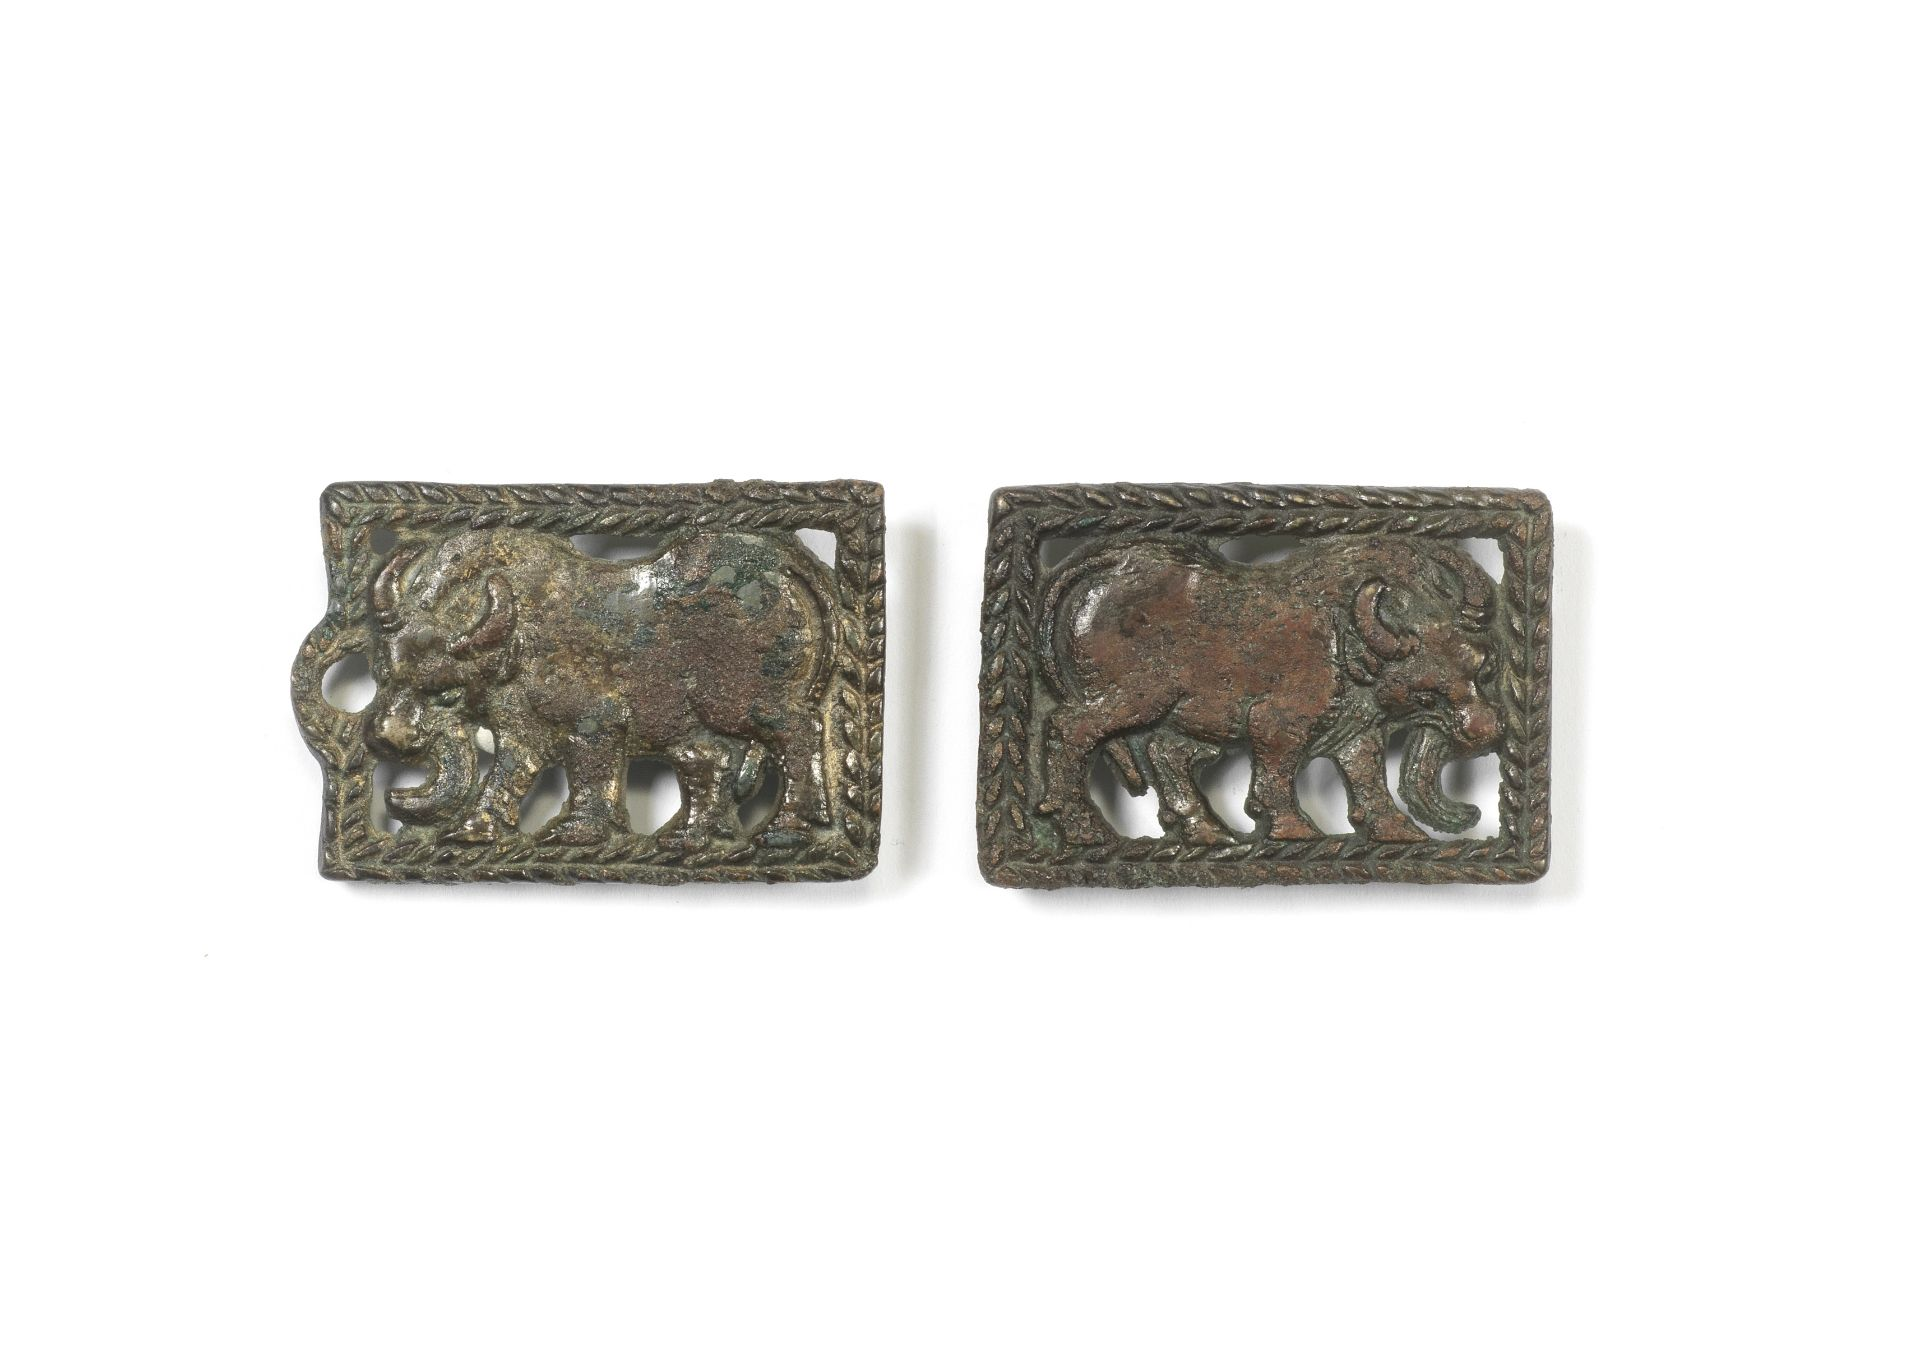 A PAIR OF ORDOS BRONZE 'WATER BUFFALO' BELT PLAQUES 4th/3rd century BC (2)